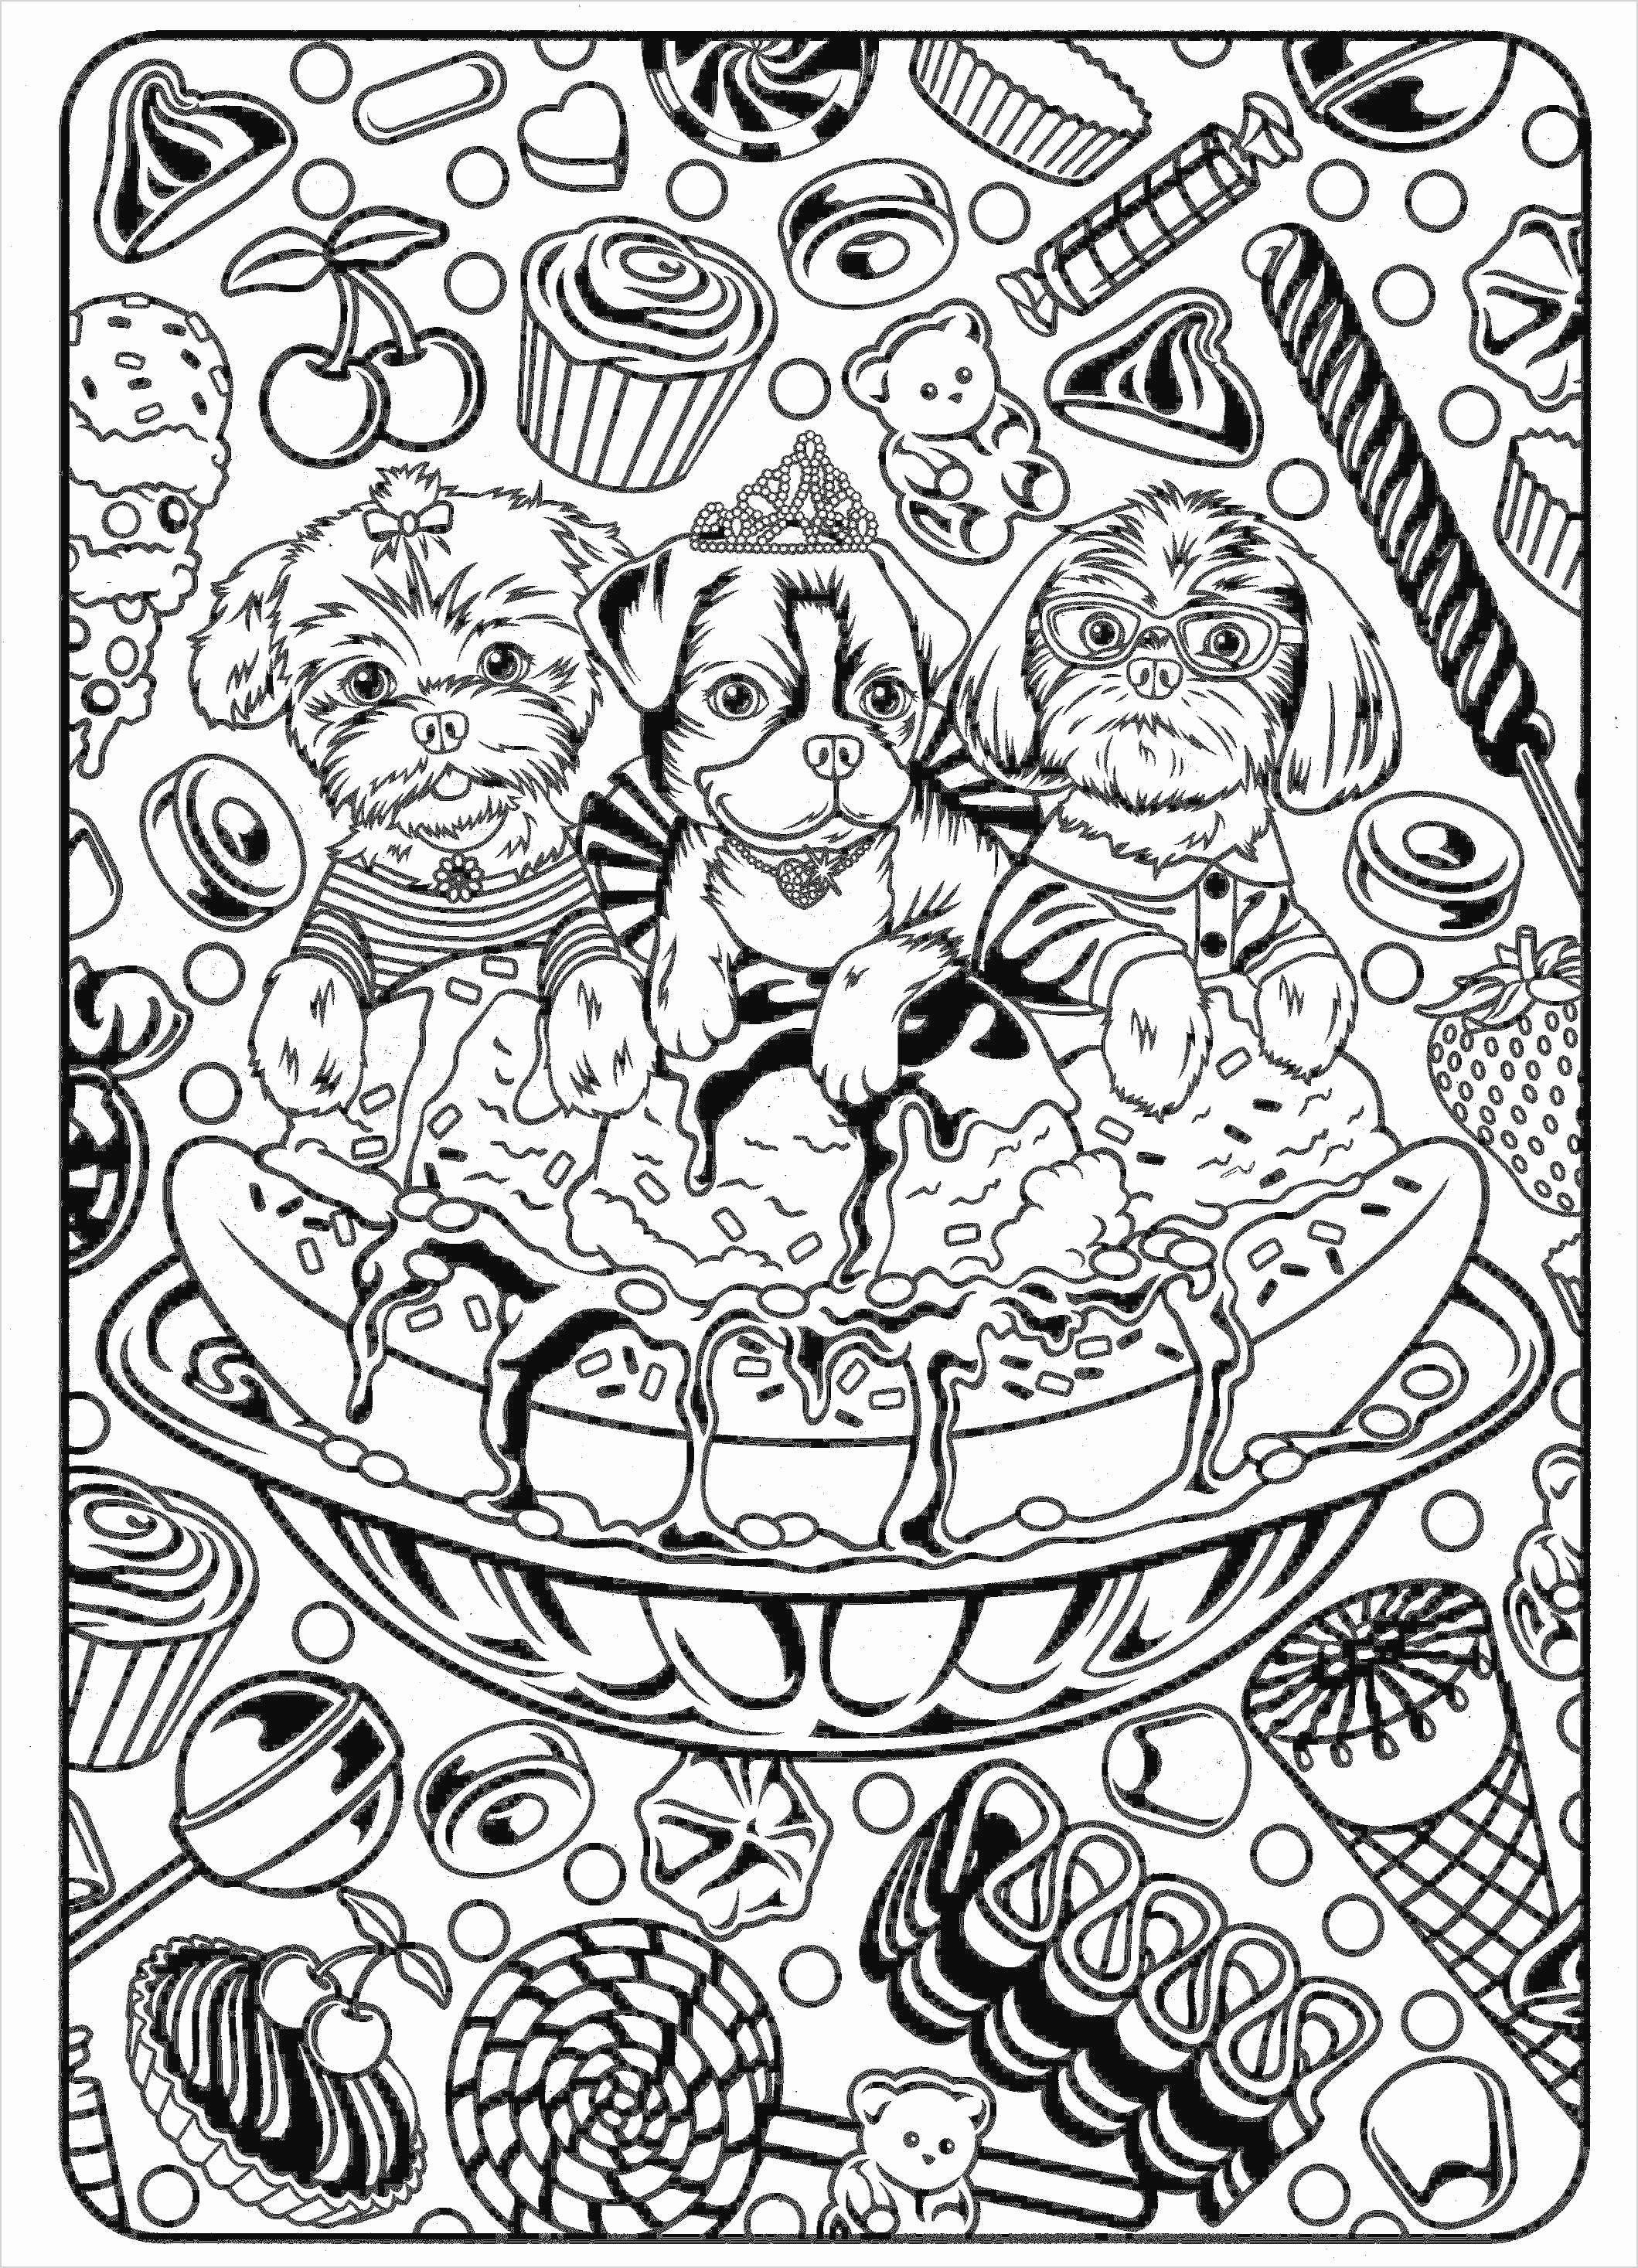 Coloring Pages Of Hair Luxury Hippie Coloring Page Cool Coloring Pages Pokemon Coloring Pages Space Coloring Pages